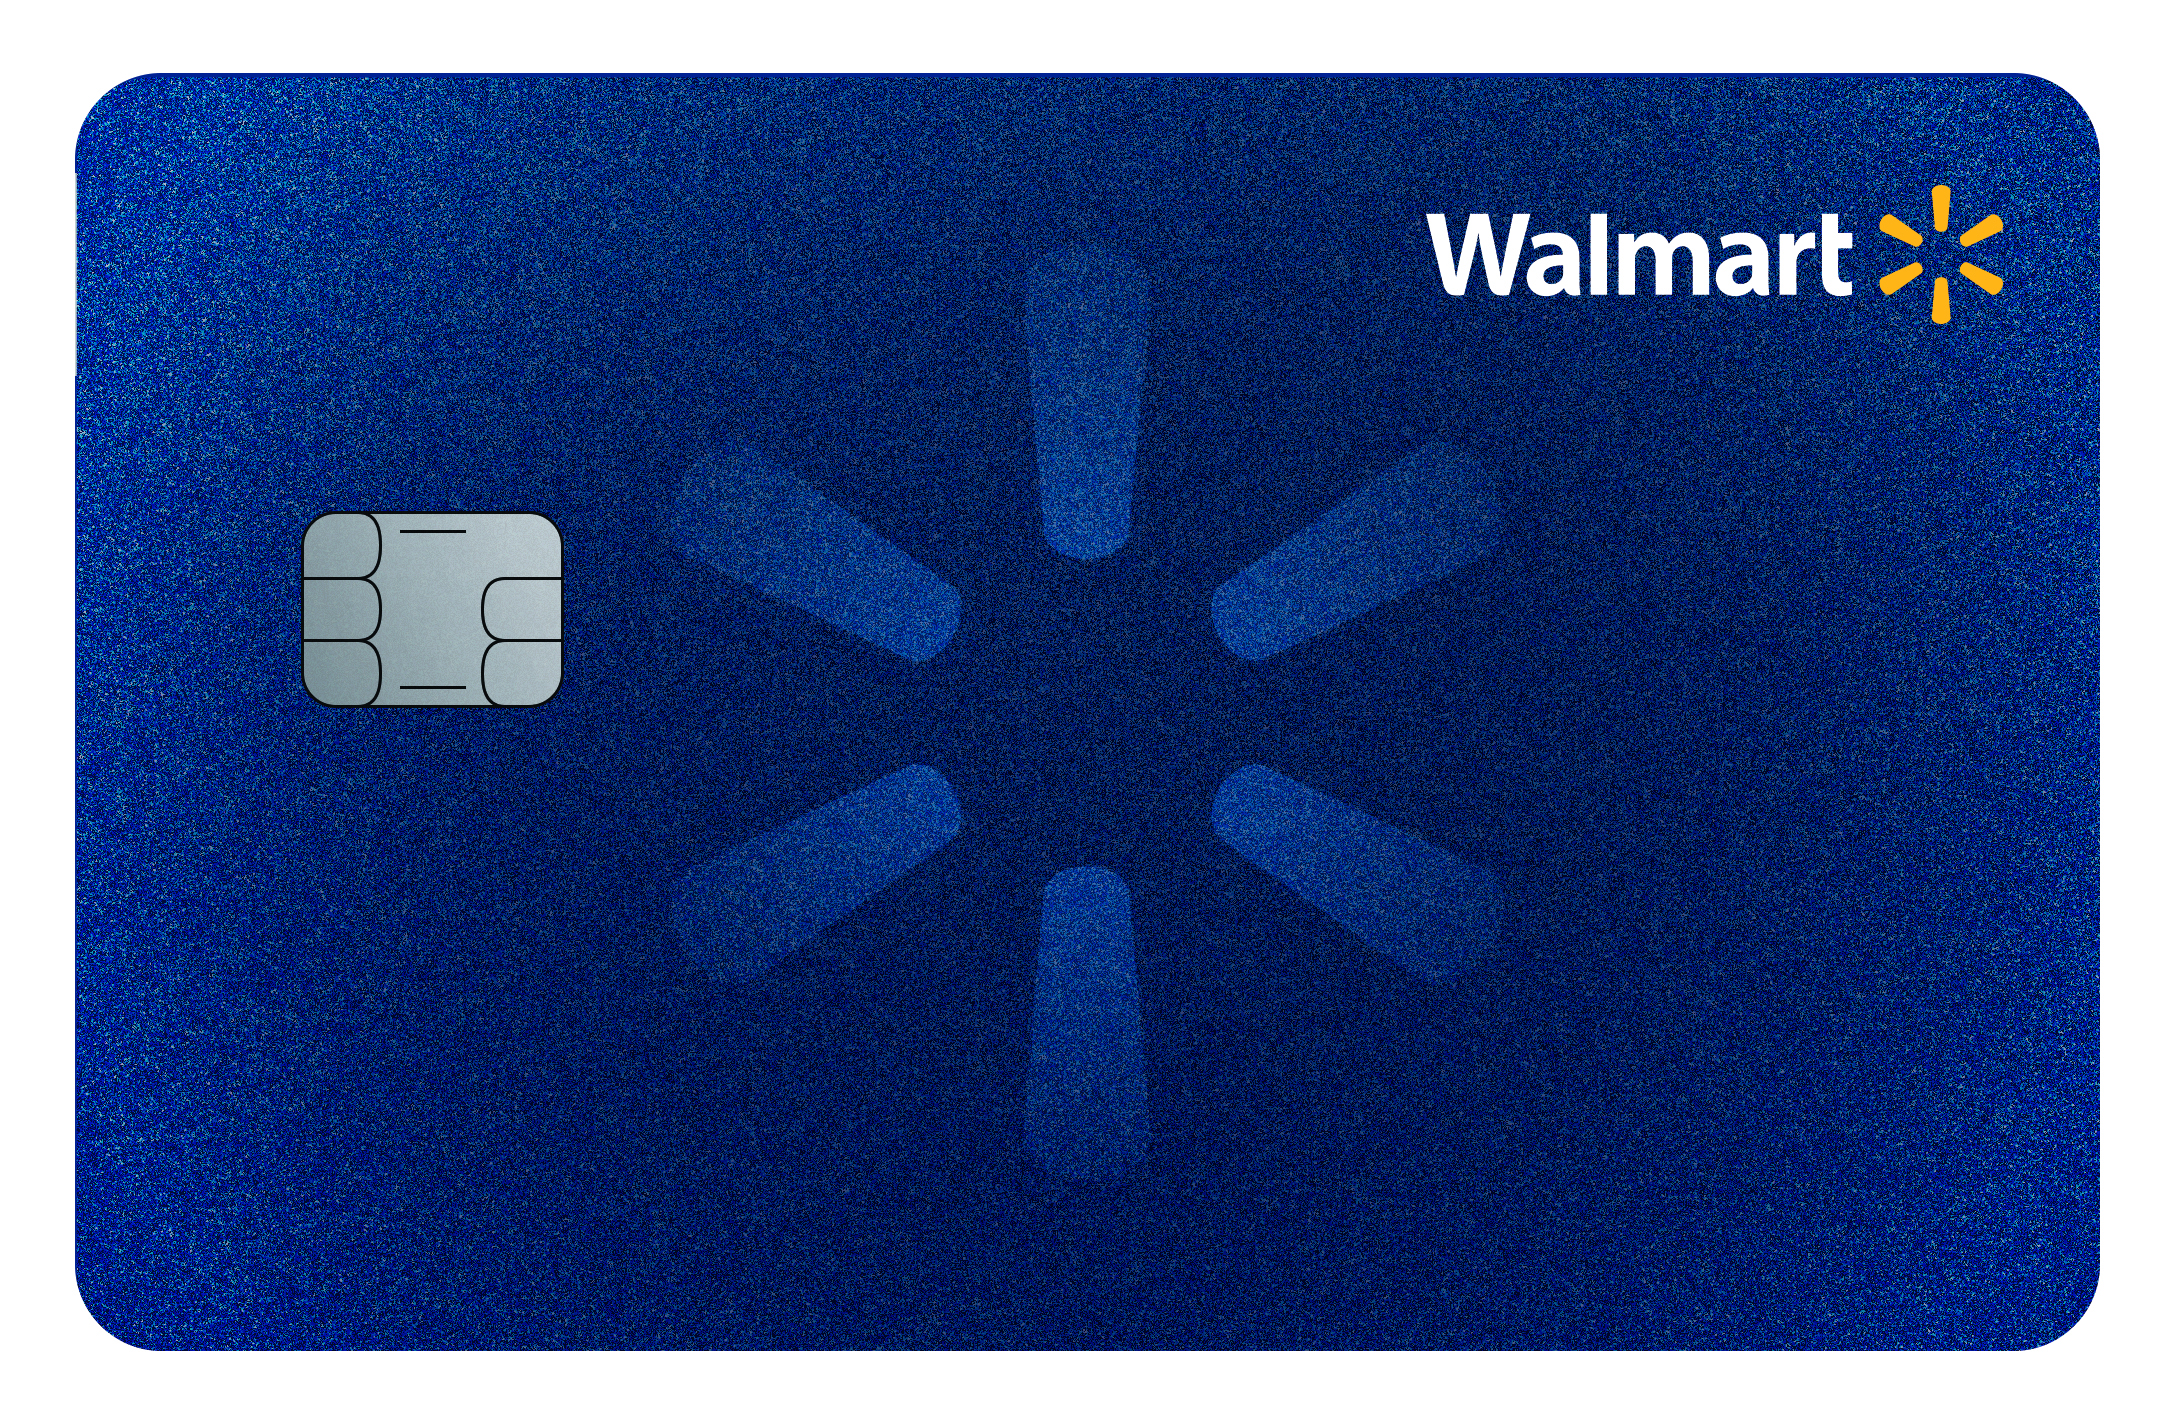 Walmart Rewards™ Card